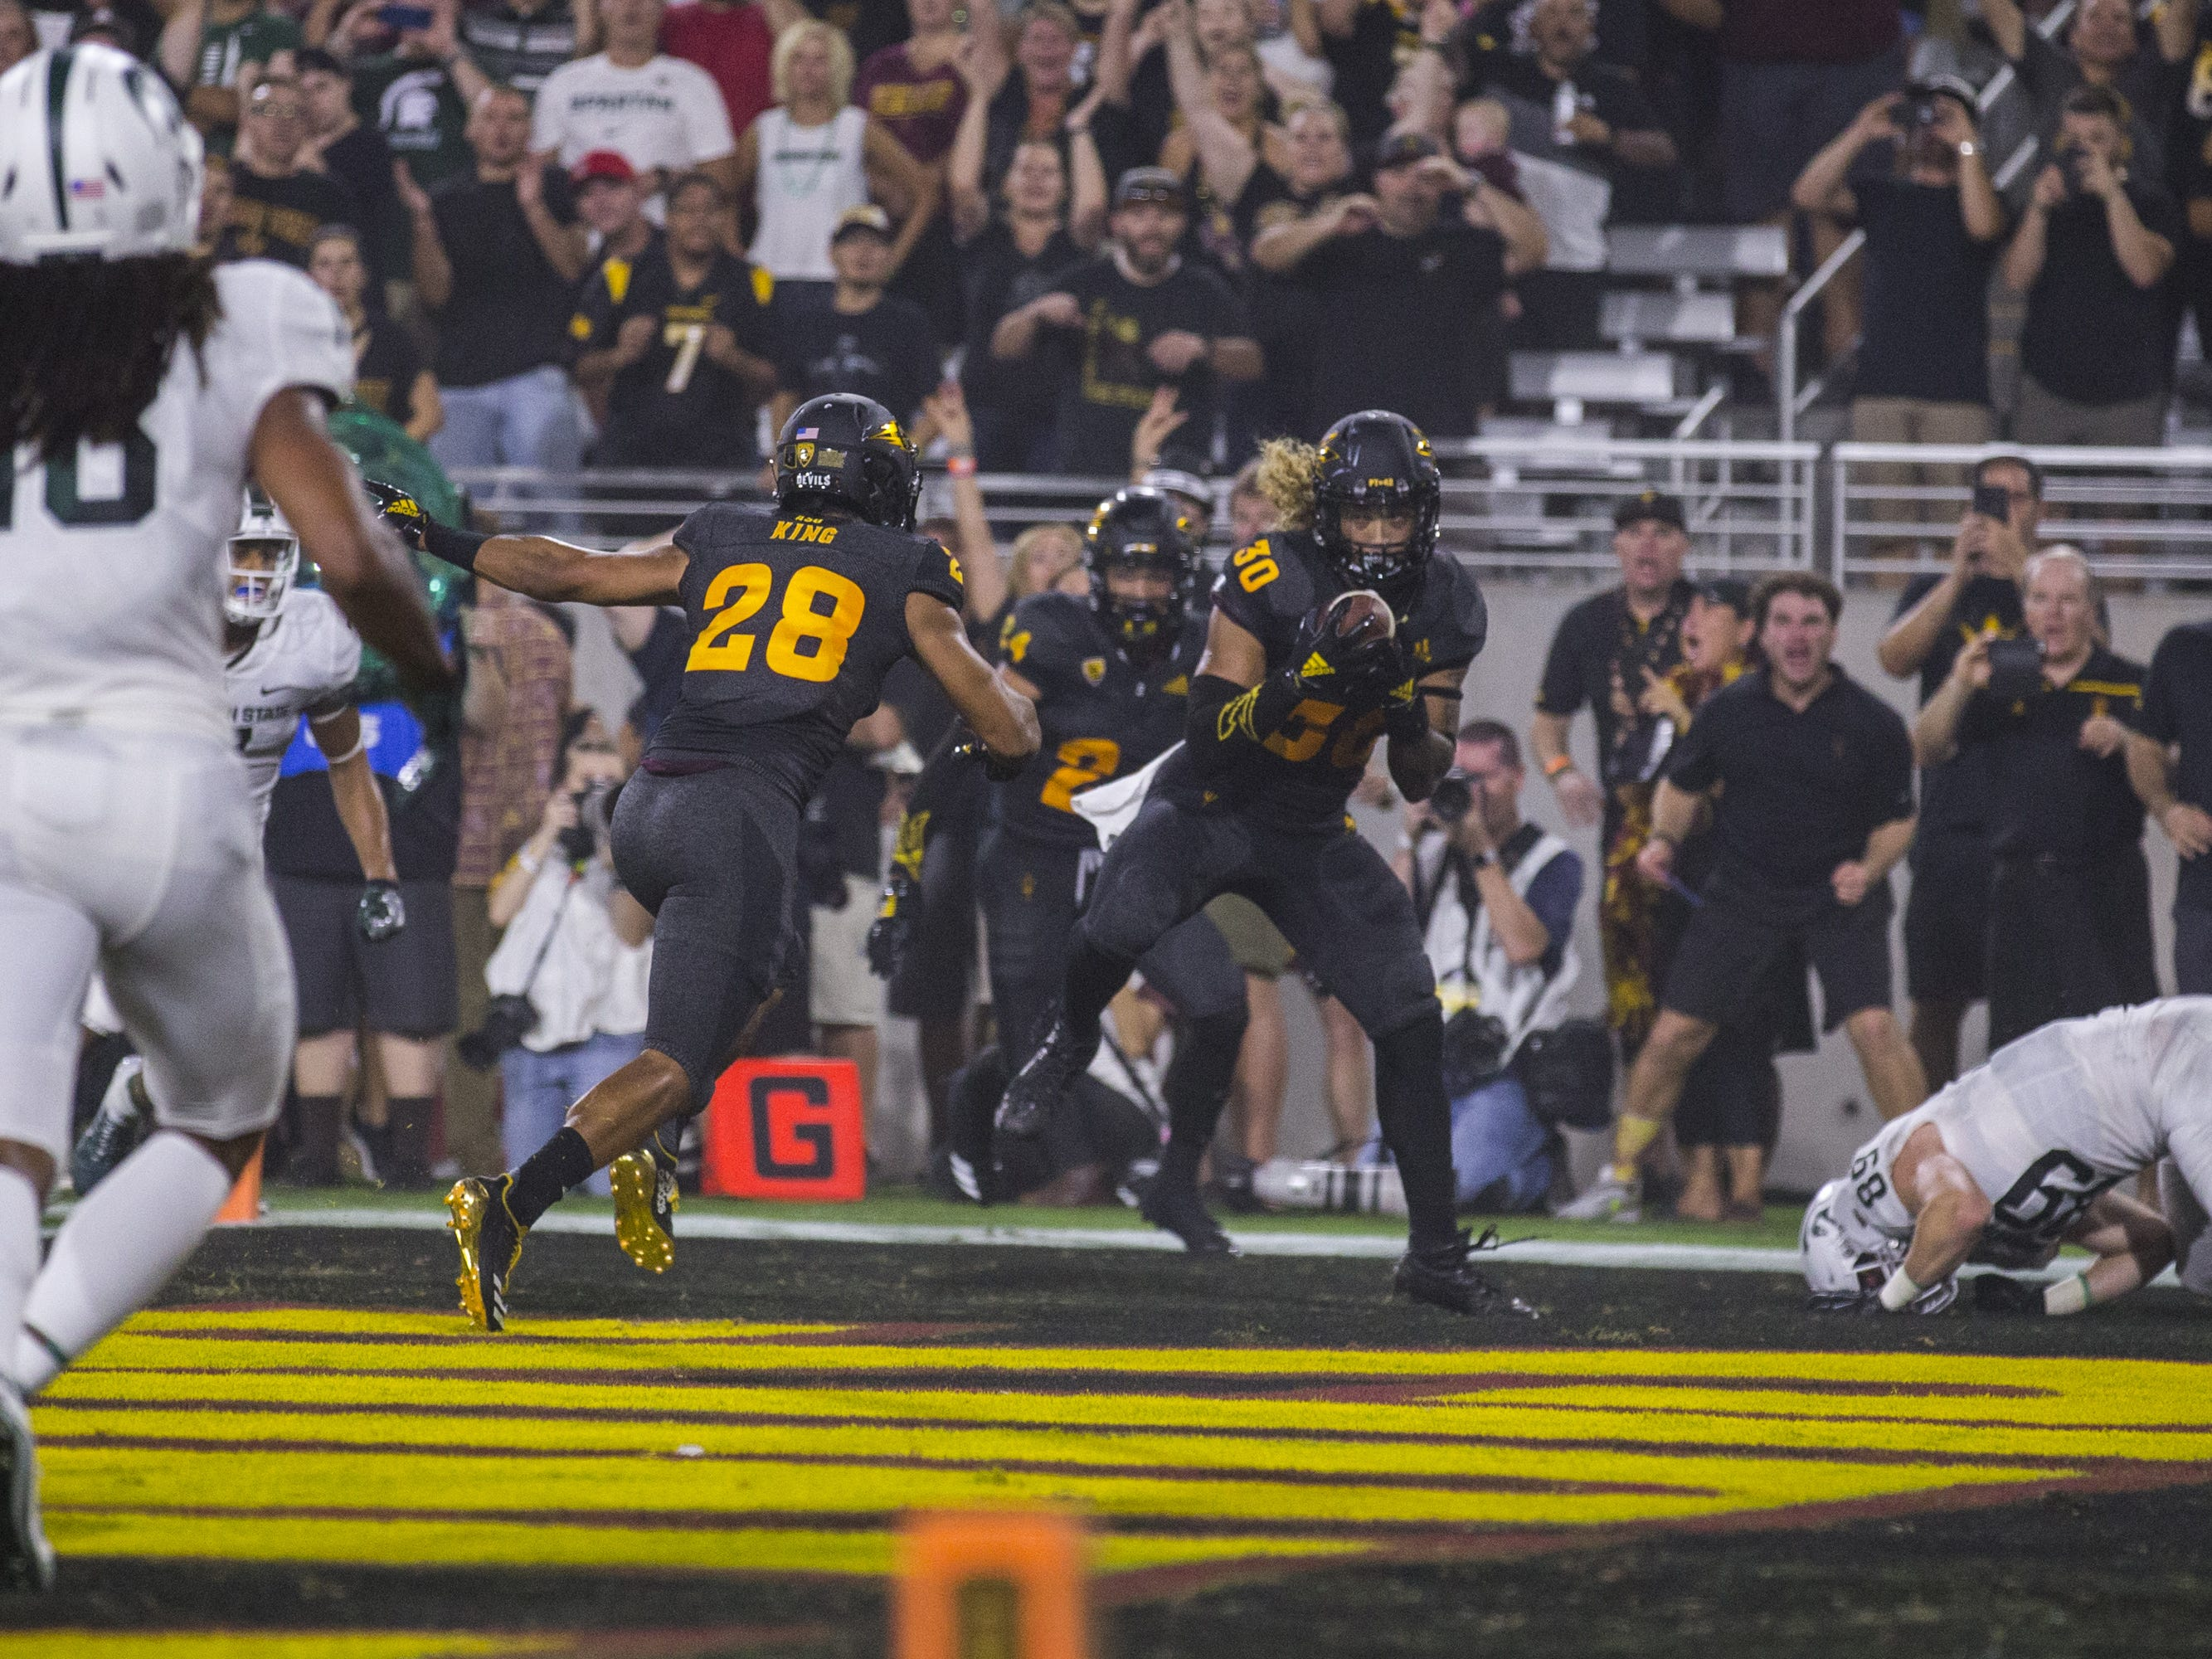 Arizona State's Dasmond Tautalatasi makes an interception the endzone against Michigan State in the 2nd quarter on Saturday, Sept. 8, 2018, at Sun Devil Stadium in Tempe, Ariz.